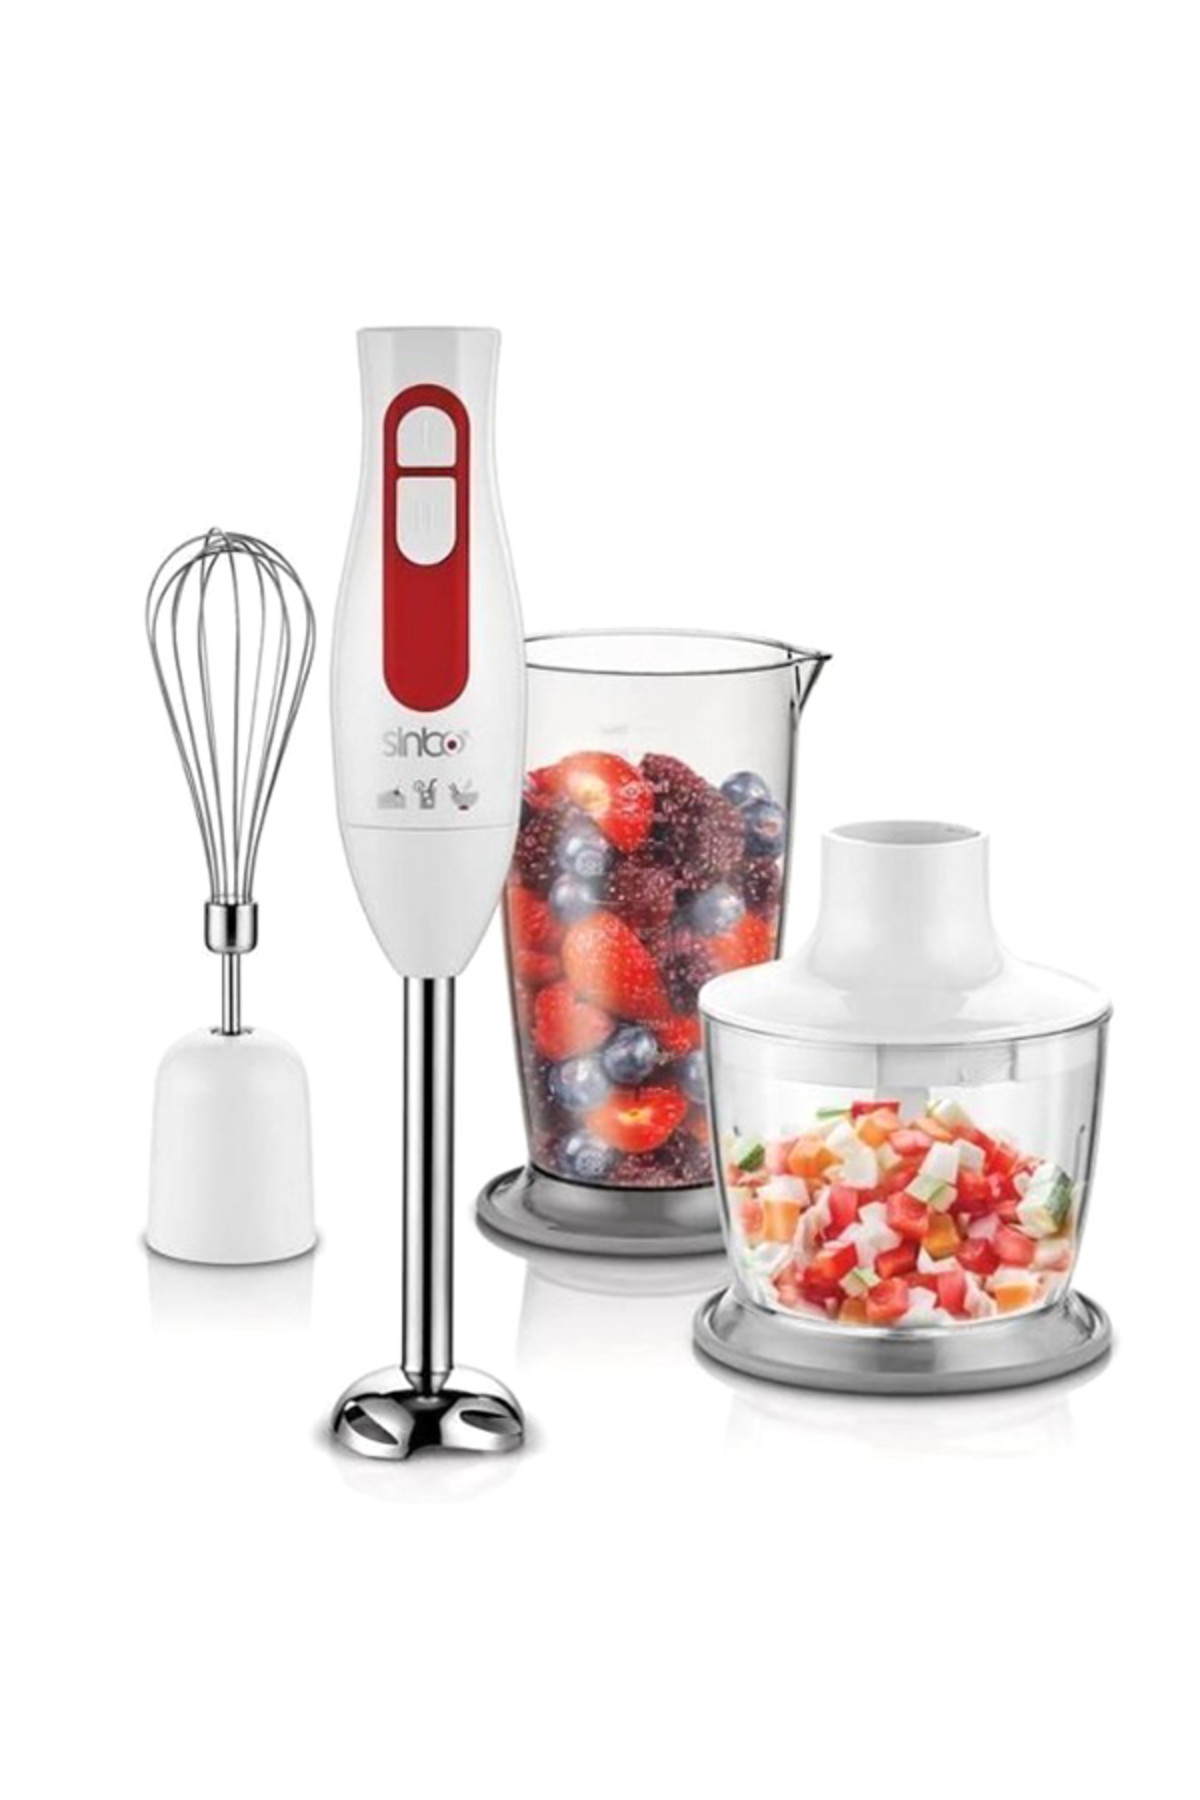 Sinbo BLENDER SET SHB-3100S 400 W 1